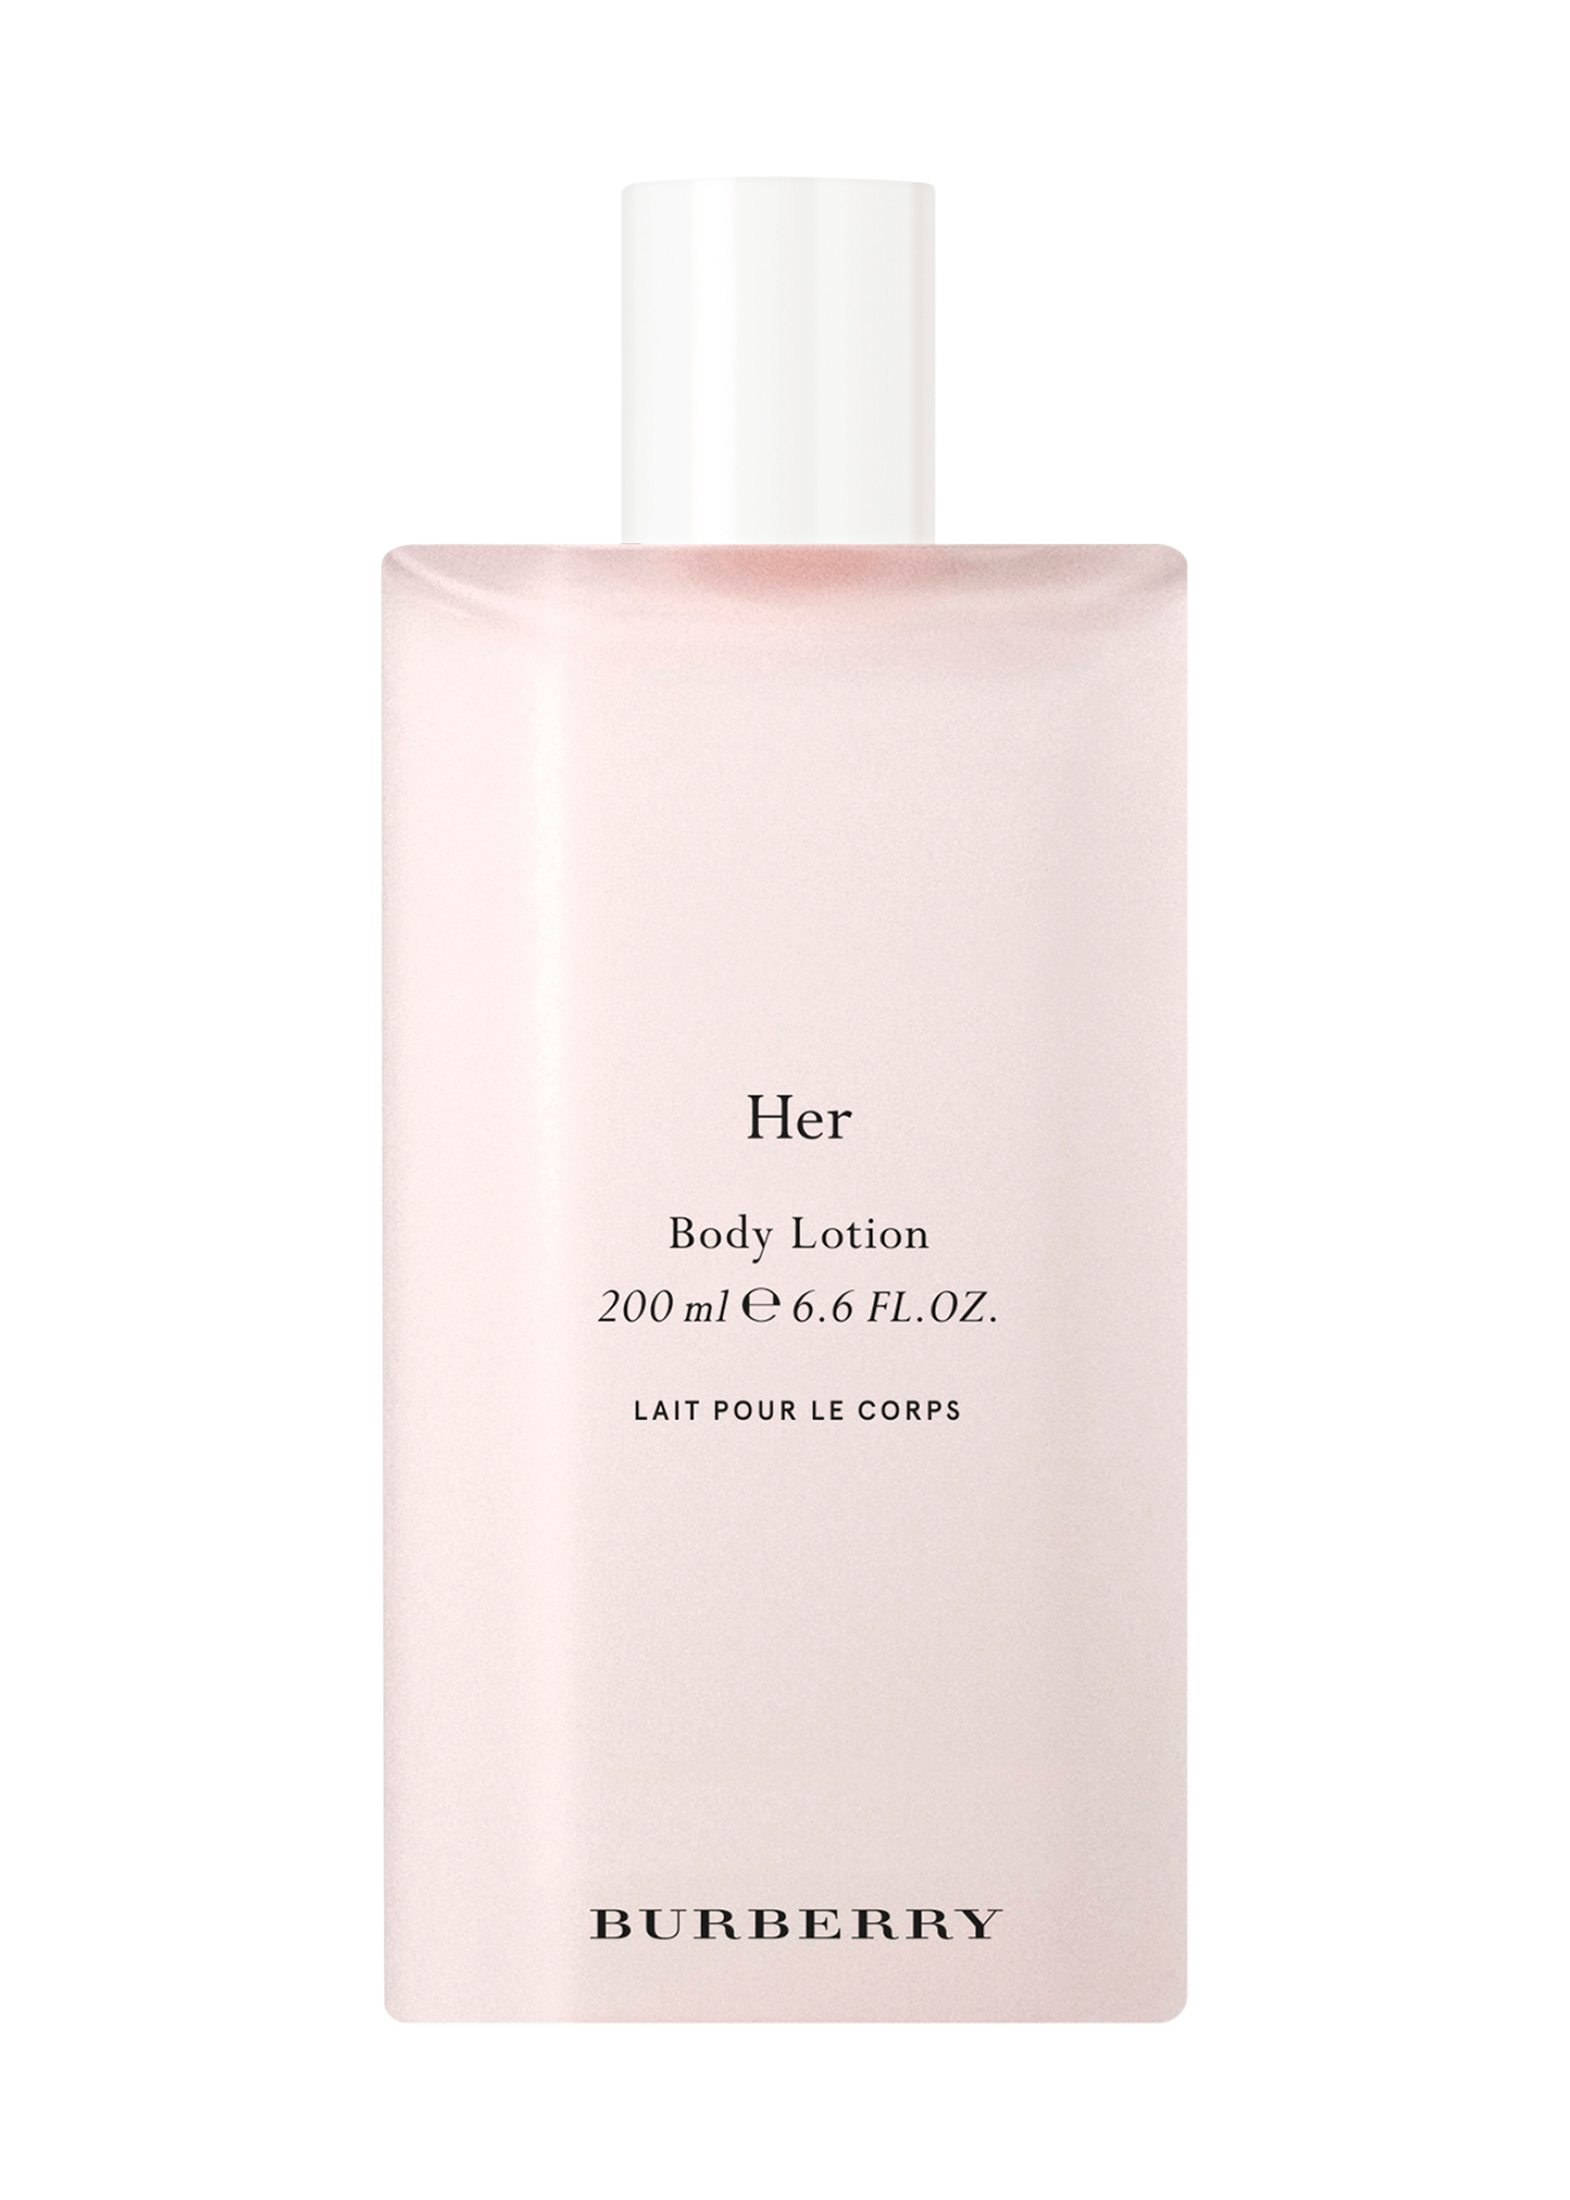 Burberry HER Body Lotion 200ml image number 0